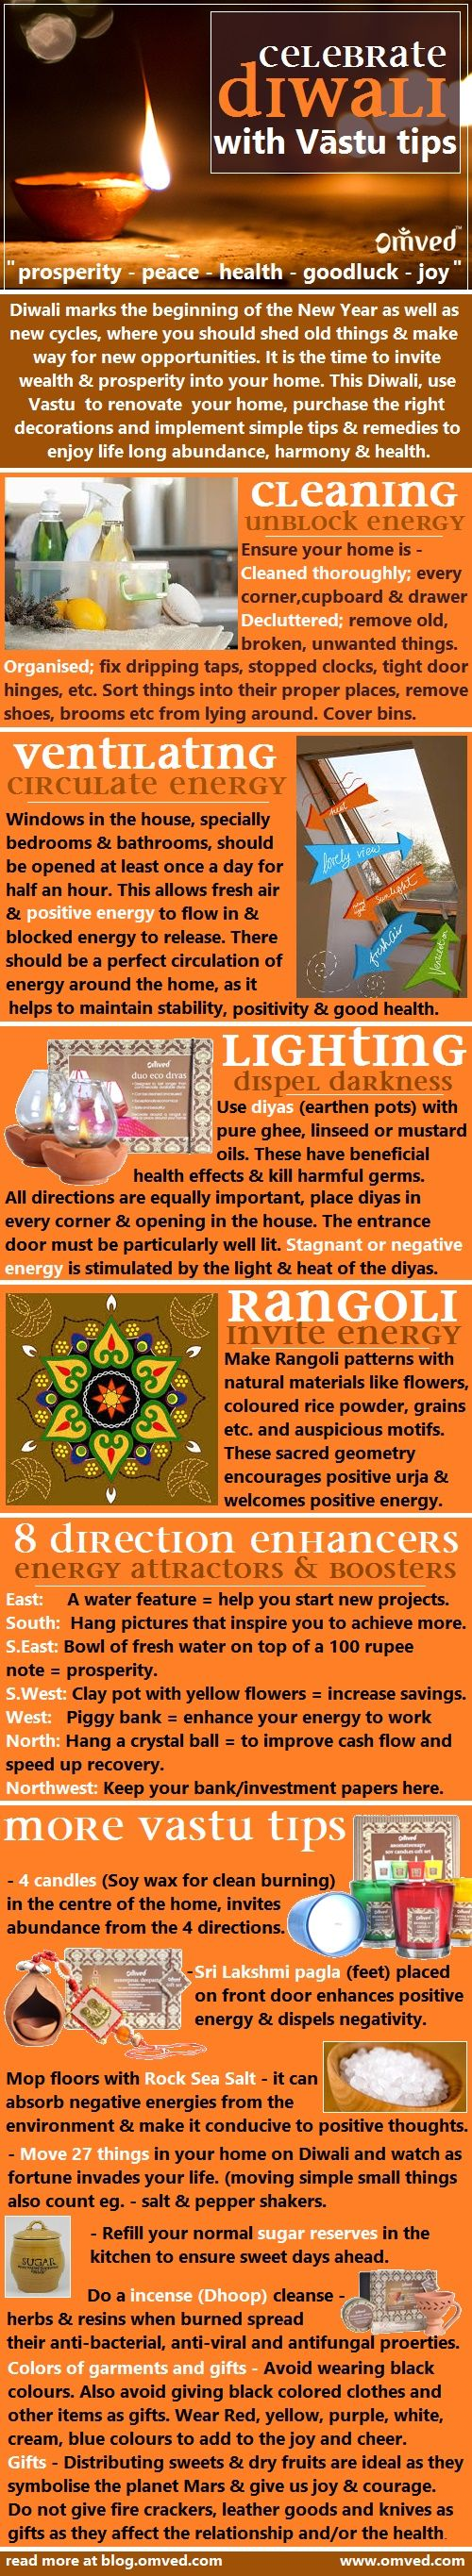 DIWALI VASTU - Although people follow the traditional way of celebrating Diwali, they can reap much more, if they just adapt the principles of Vastu to the traditional way. Vaastu, the science of placement, can be put to good use in your home and workplace on Diwali day, not only to bring positivity inside, but also to receive the blessings of the reigning deities of this festival.